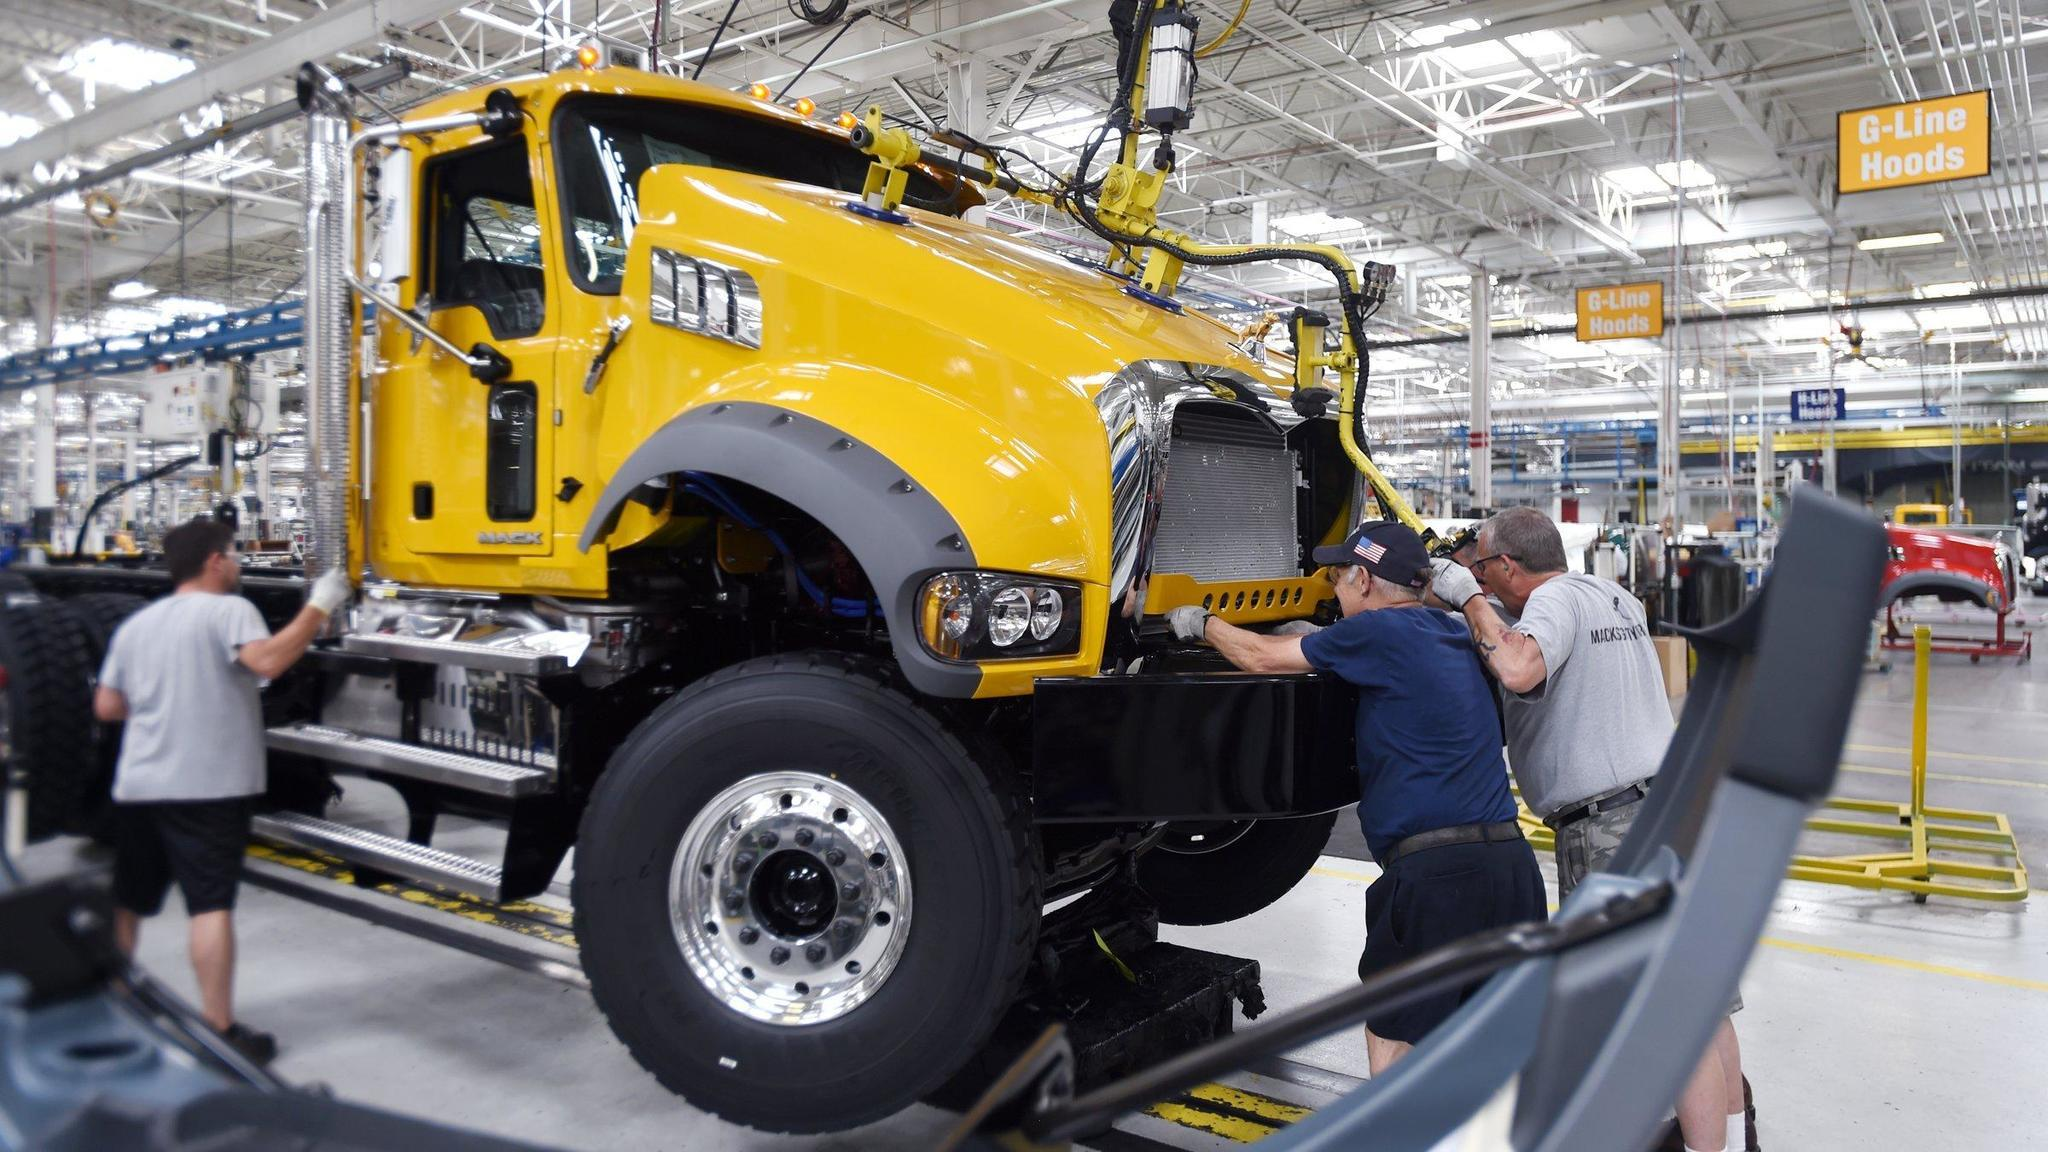 Truck market recovering? Mack's 1Q deliveries decline but orders surge - Lehigh Valley Business ...